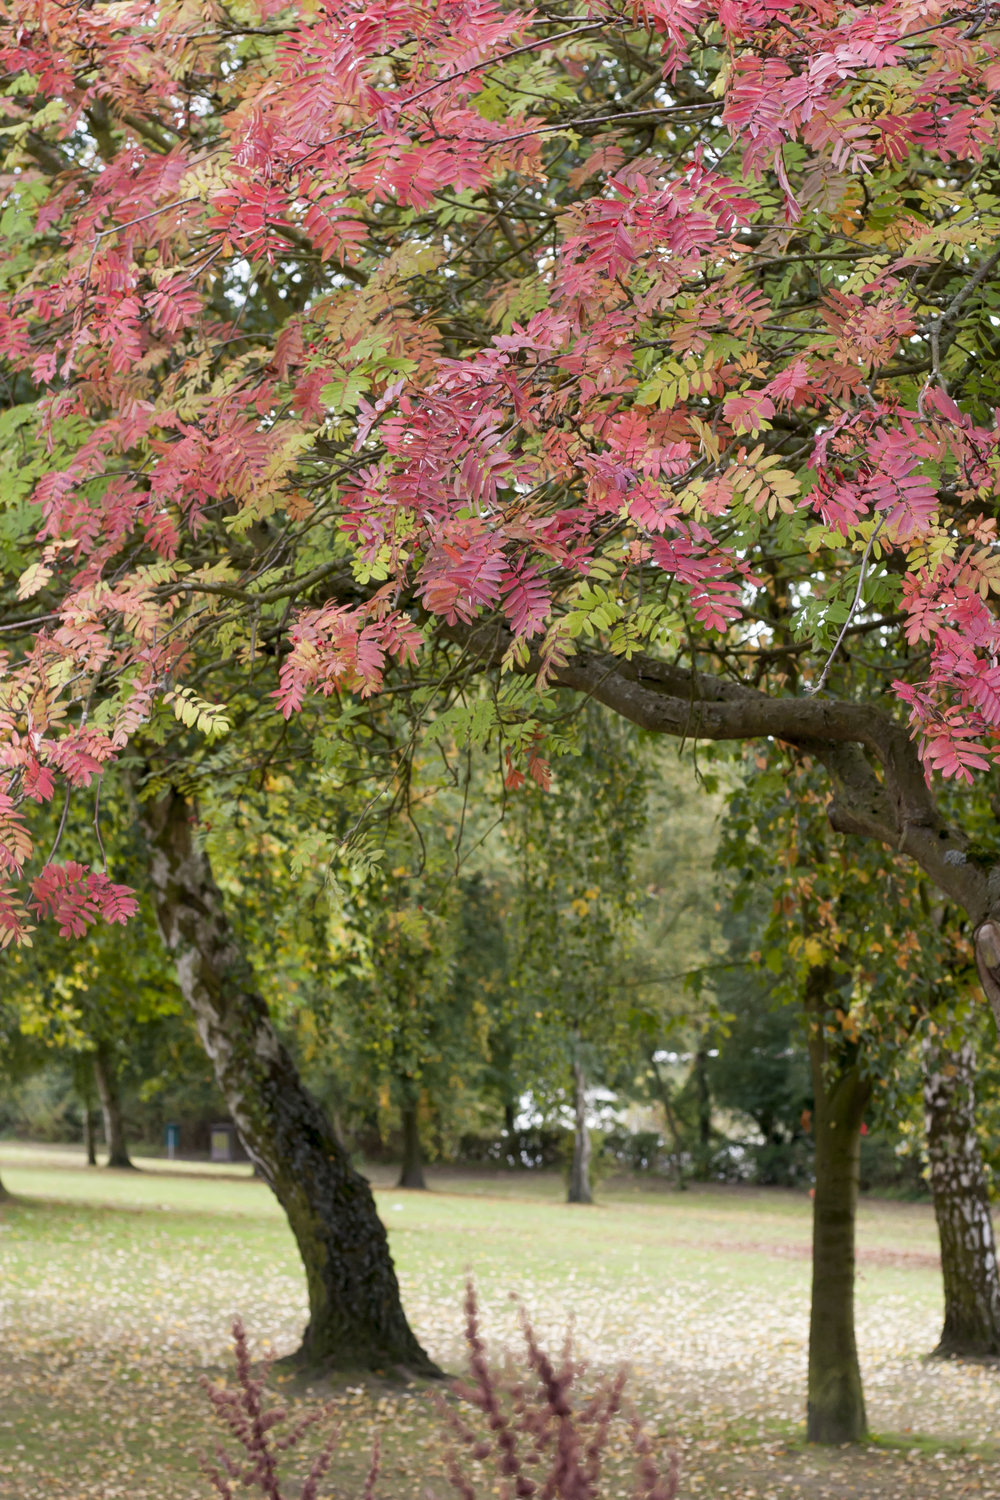 Healthy trees with pink and green leaves